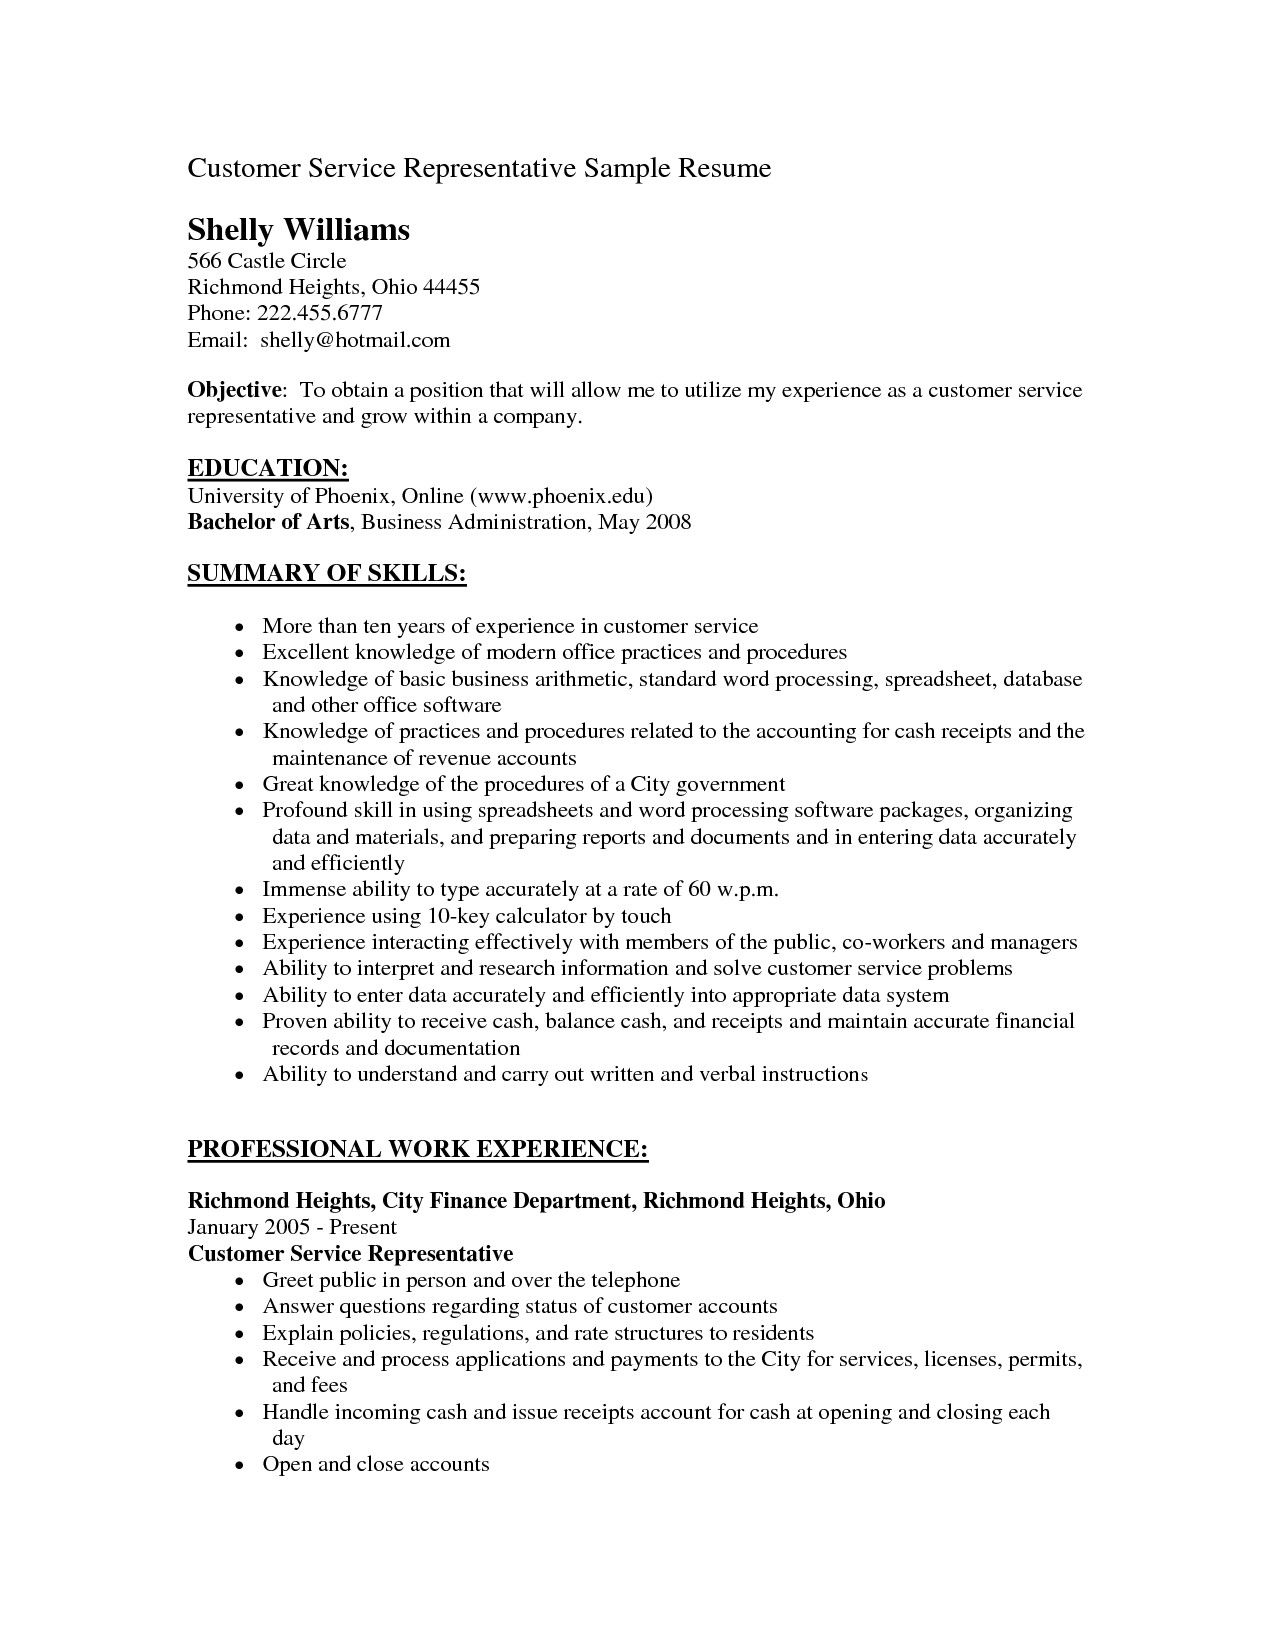 hiring manager resume sample new customer service objectives of special objective Resume Resume Examples Customer Service Objective